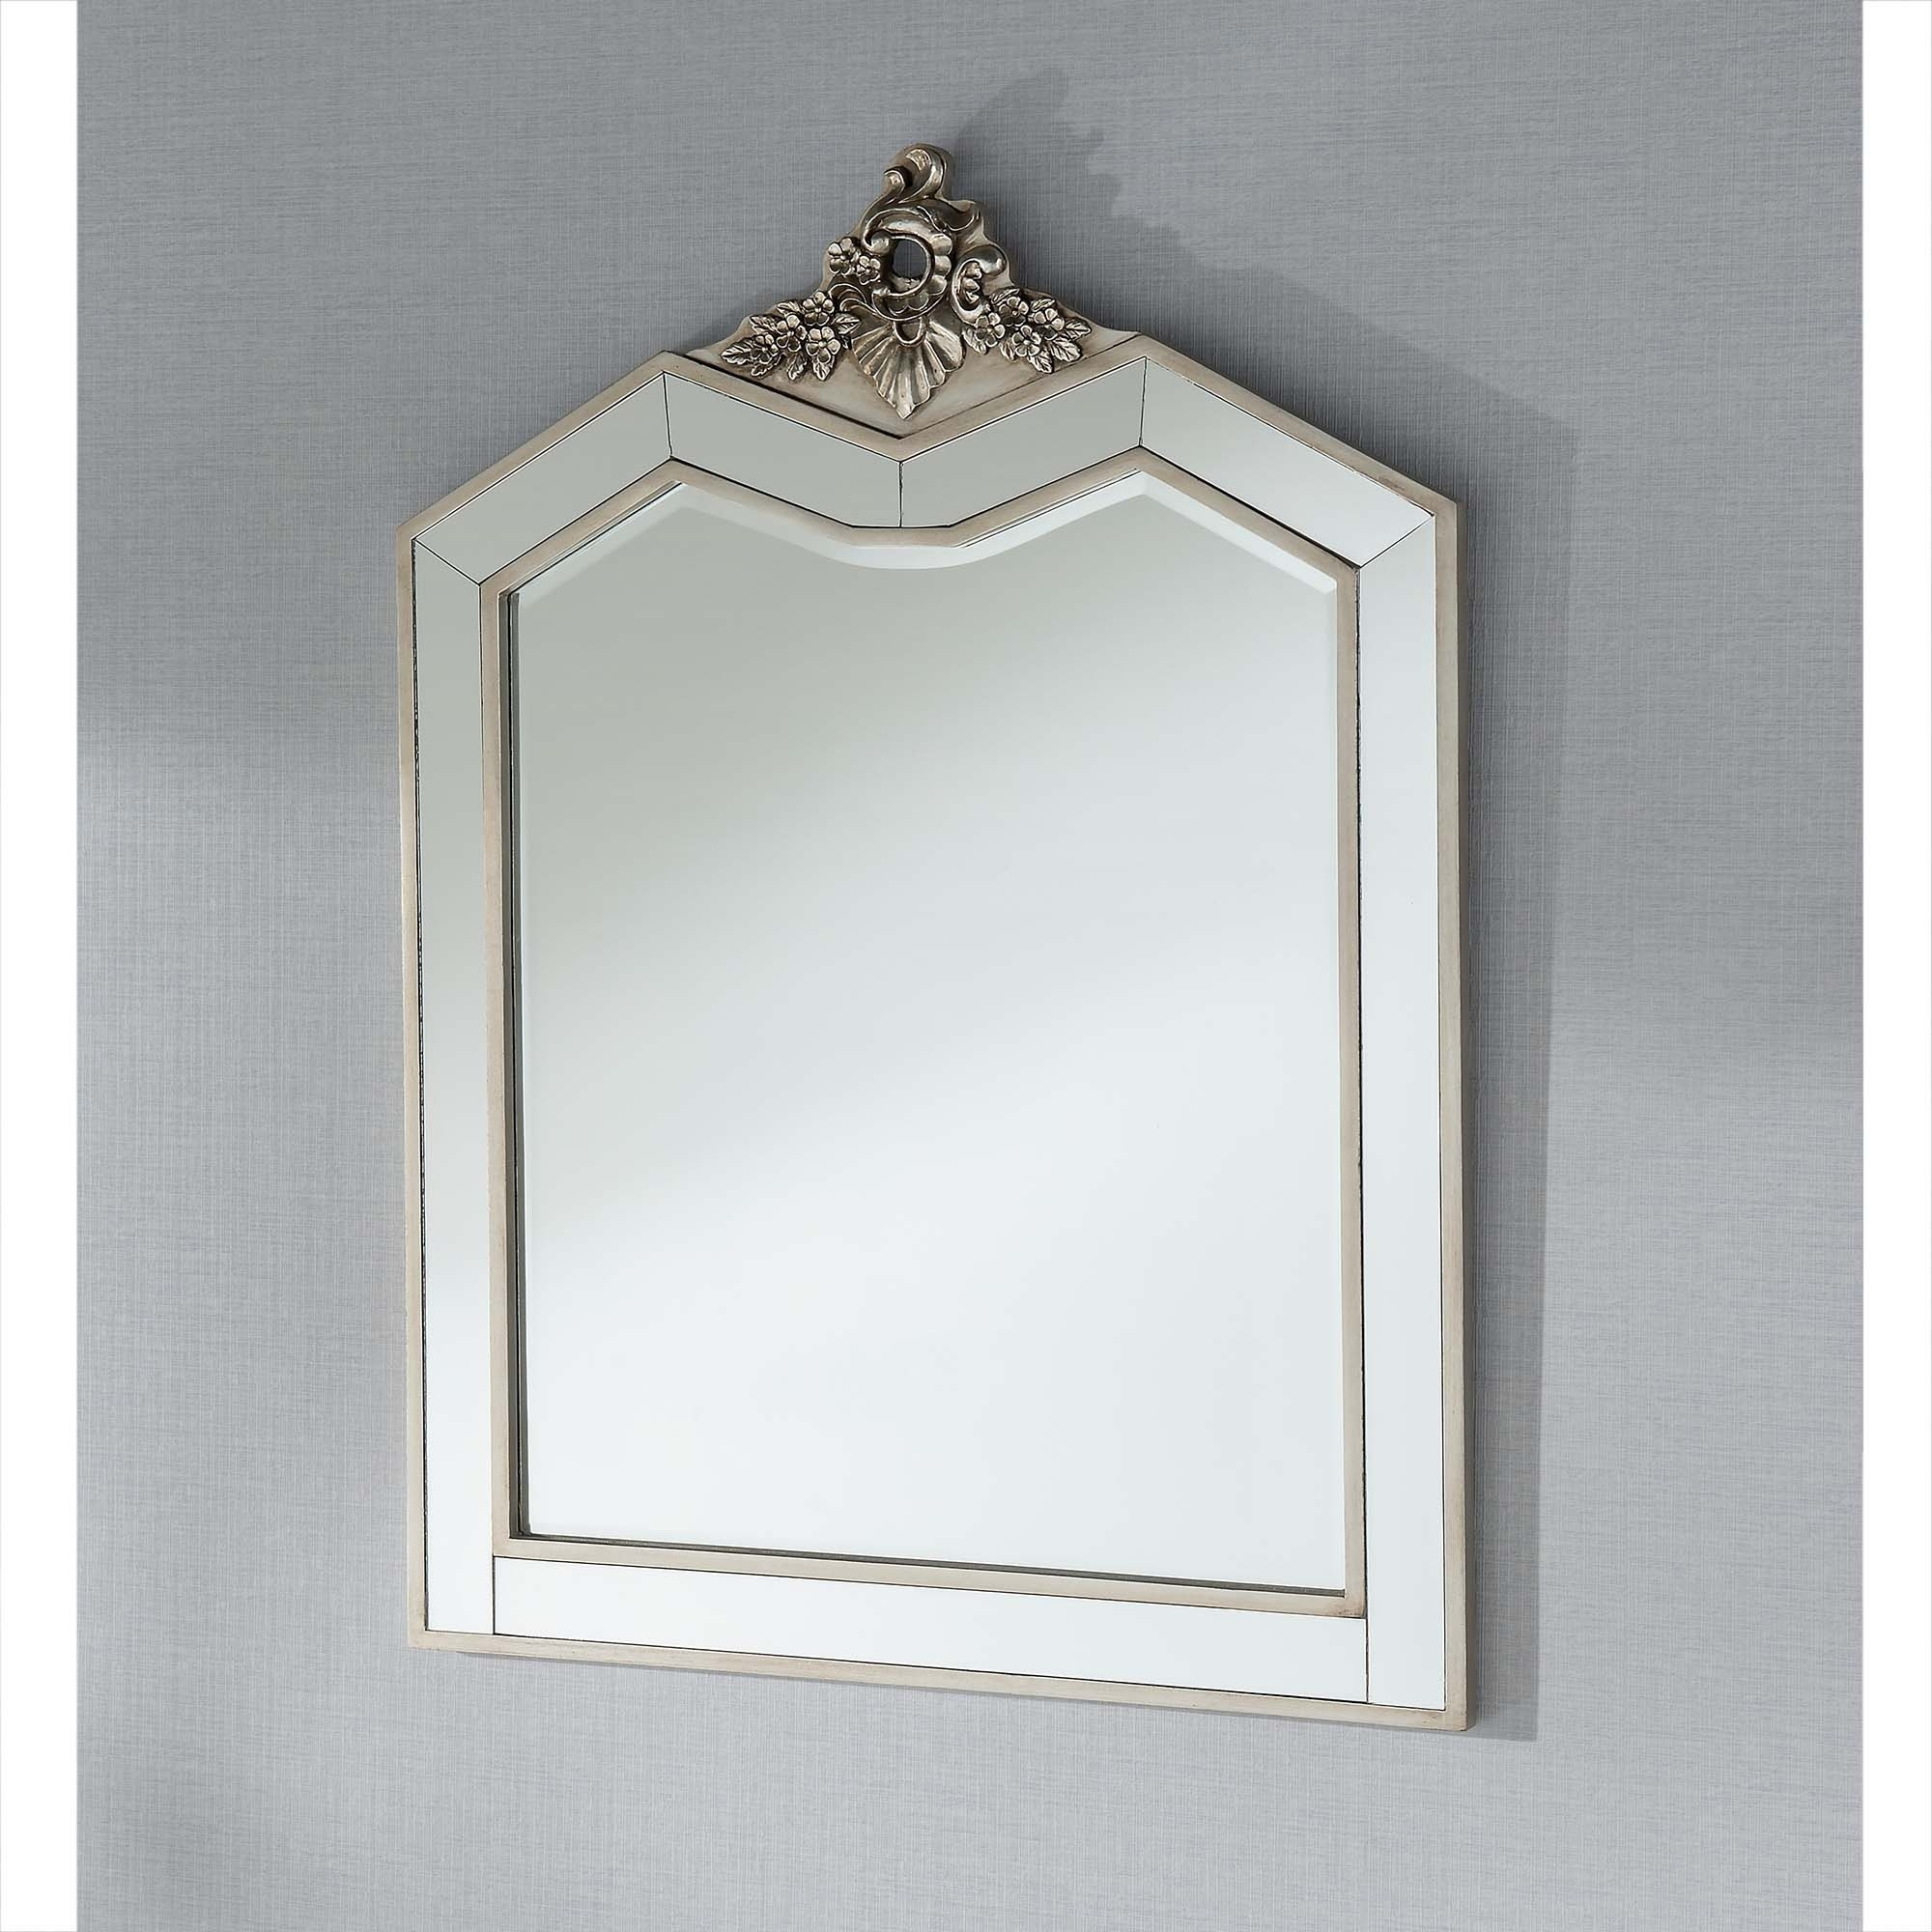 Argente Antique French Style Dressing Table Mirror French Mirrors From Homesdirect 365 Uk